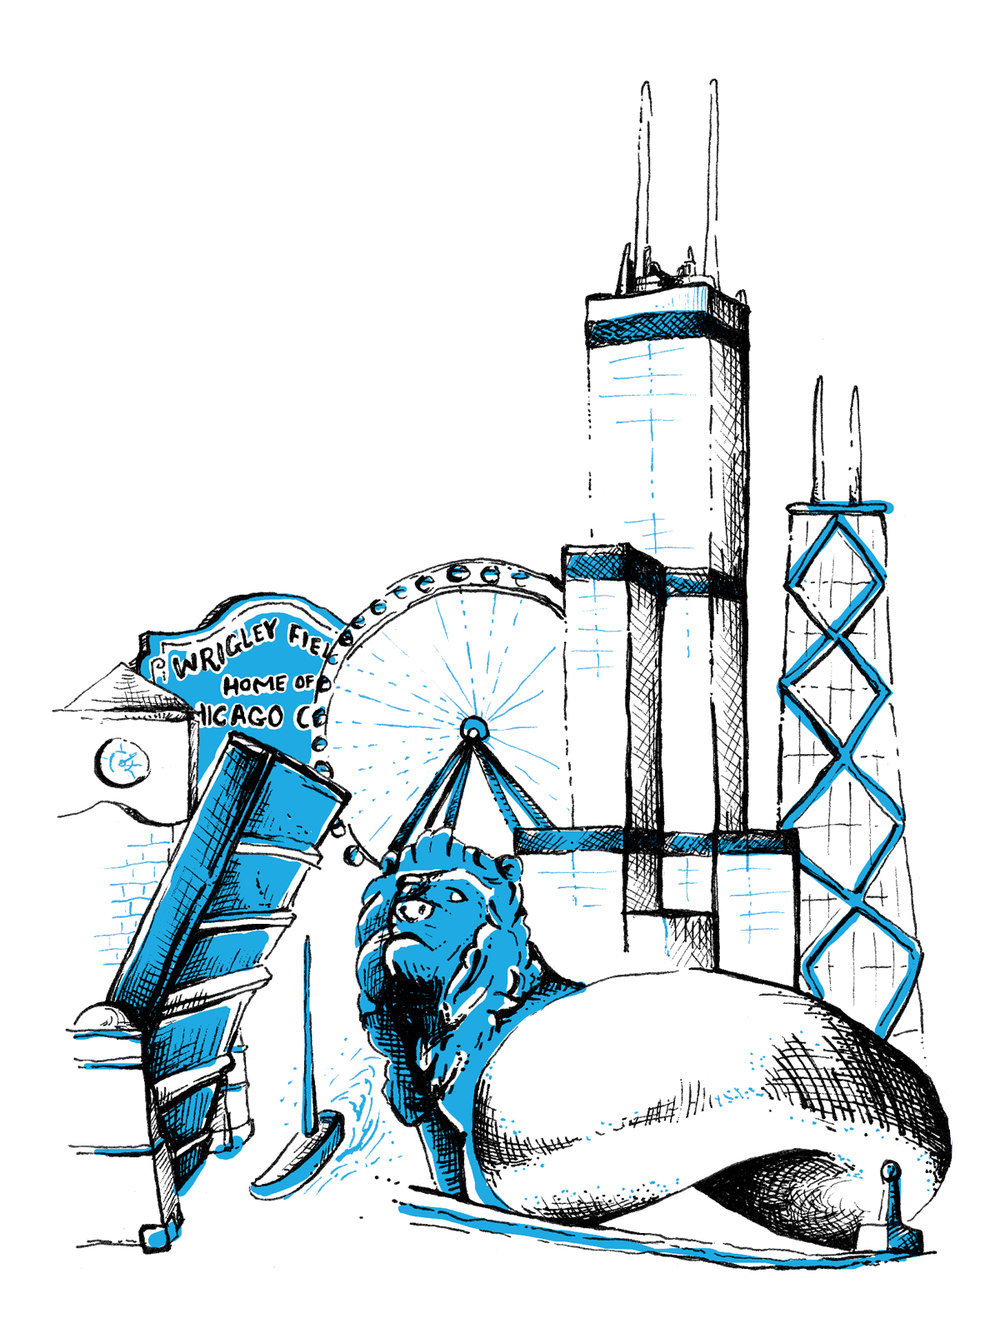 Hand drawn illustration of Chicago skyline skyscrapers, the millenium bean, the lion statue, wrigley field and bridges.